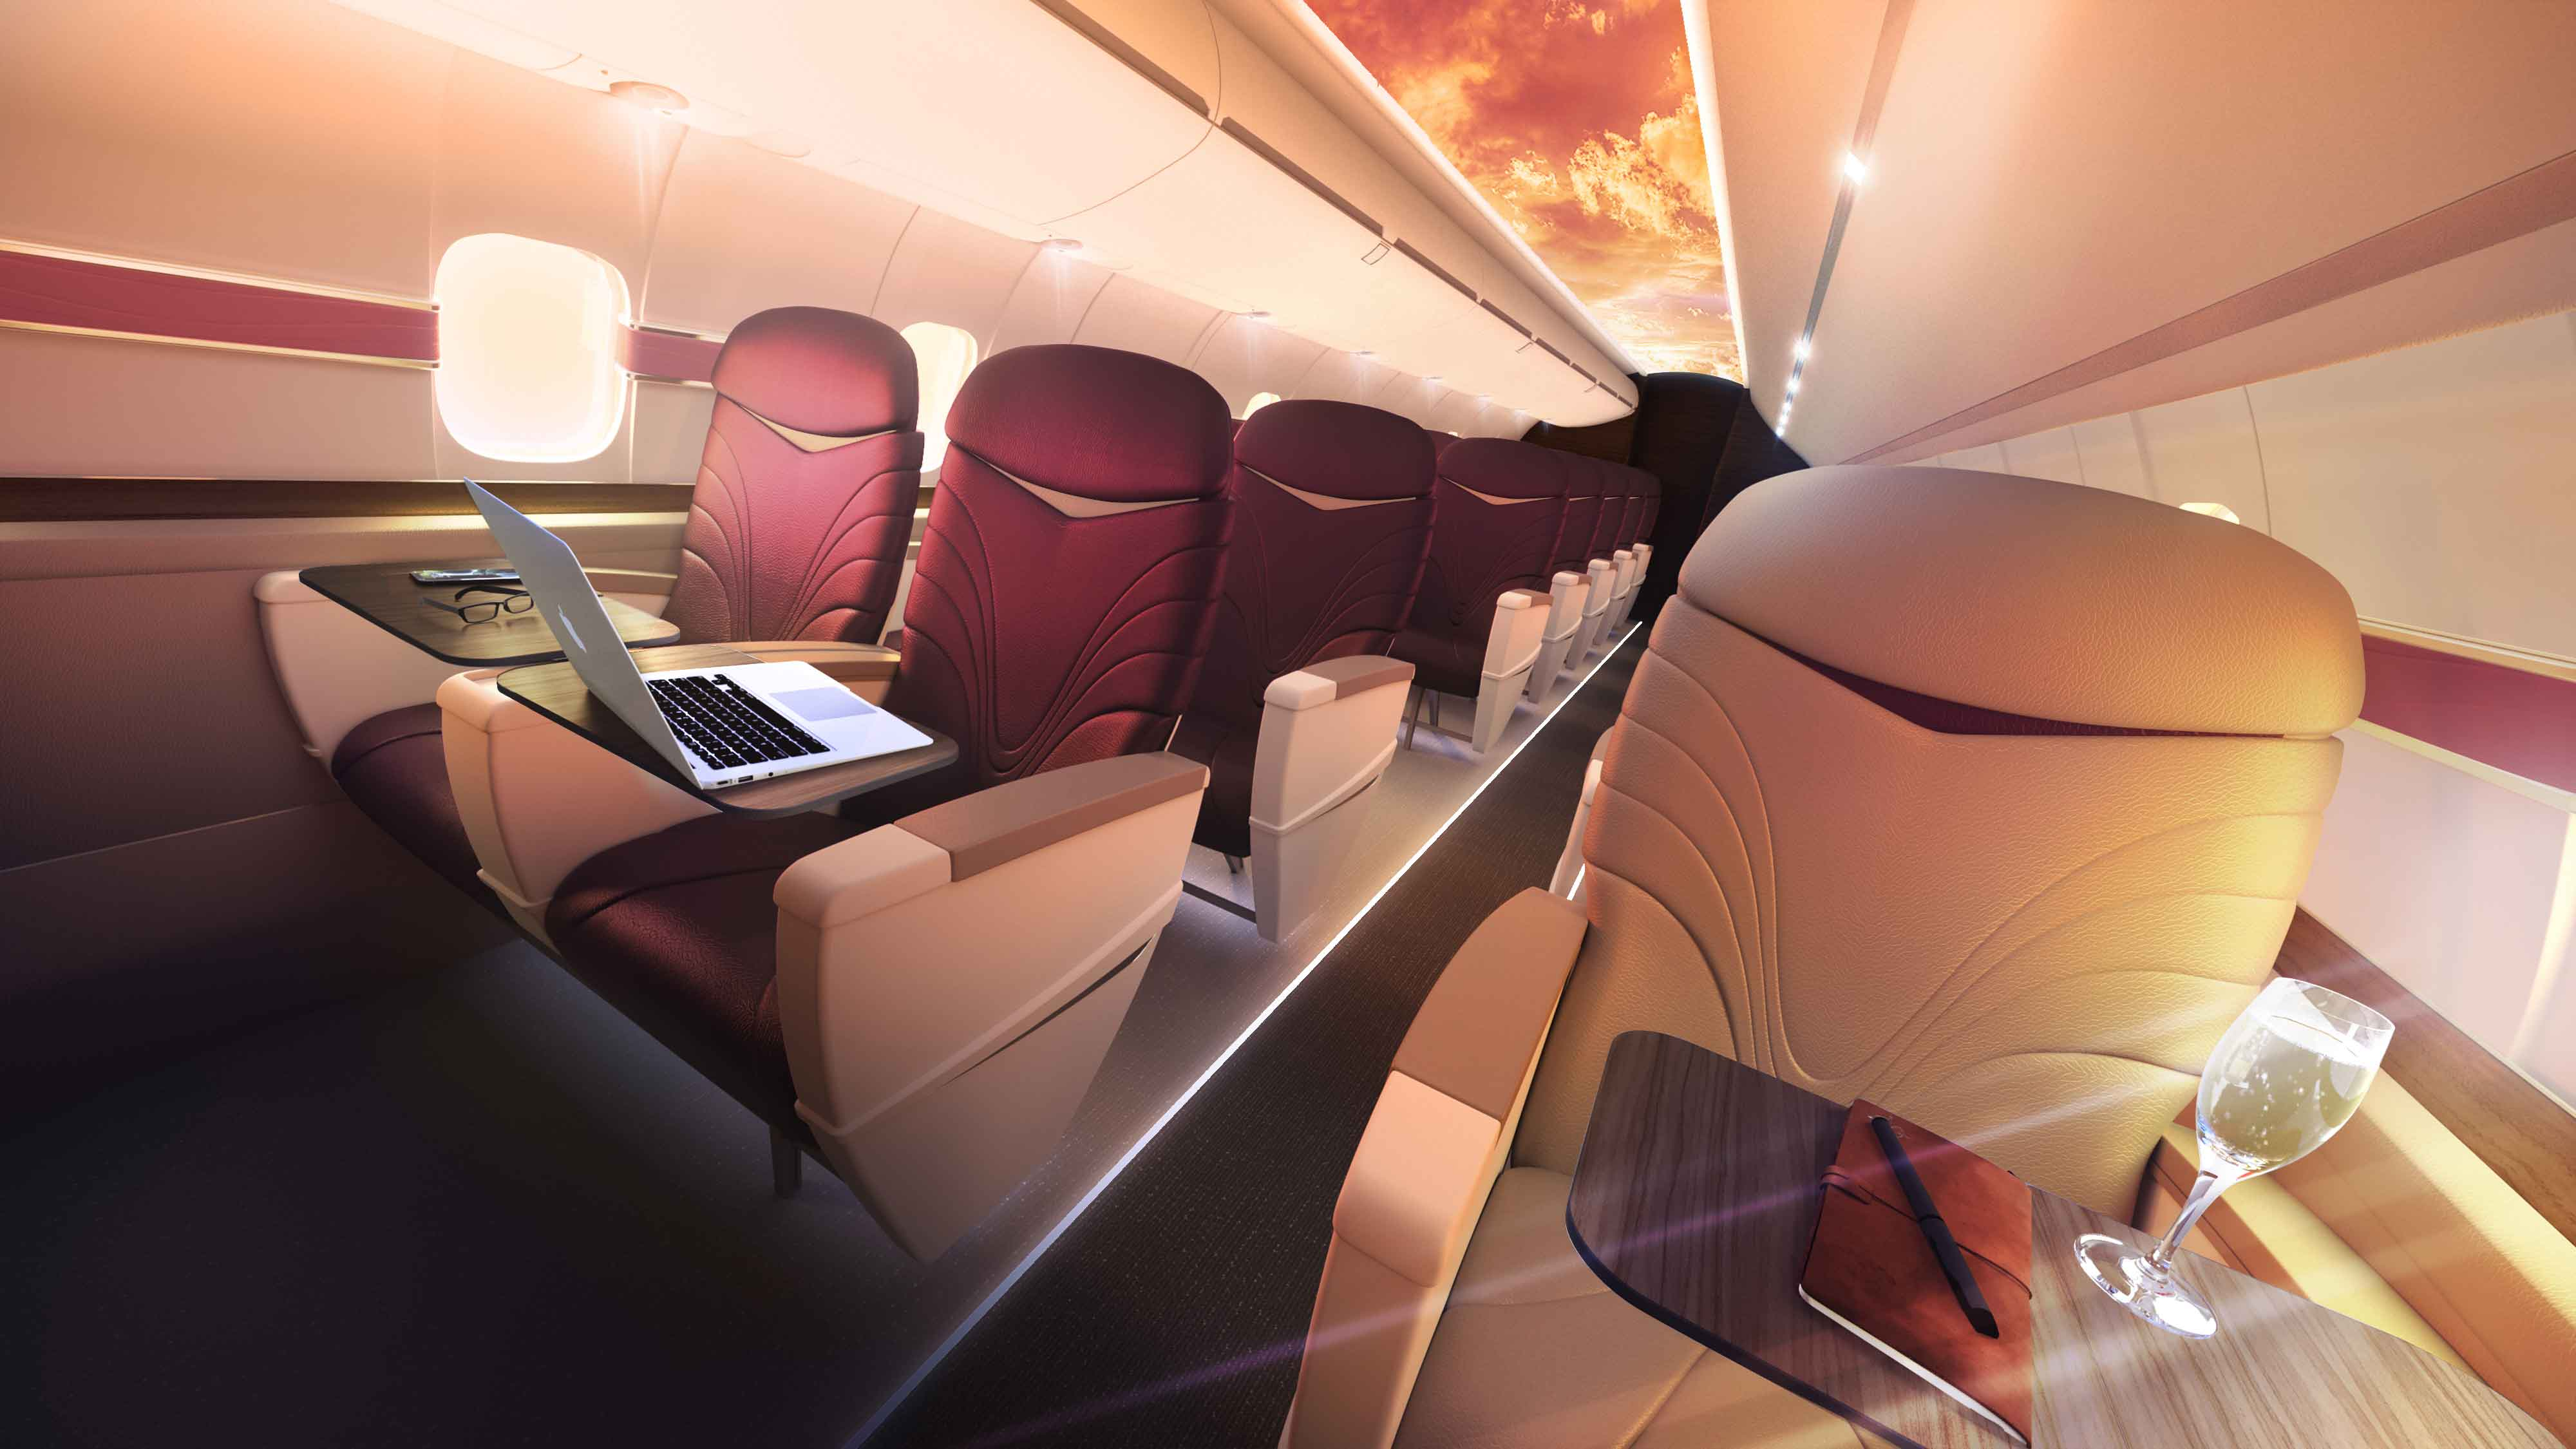 Ultra-deluxe First-Class for the Price of Coach?